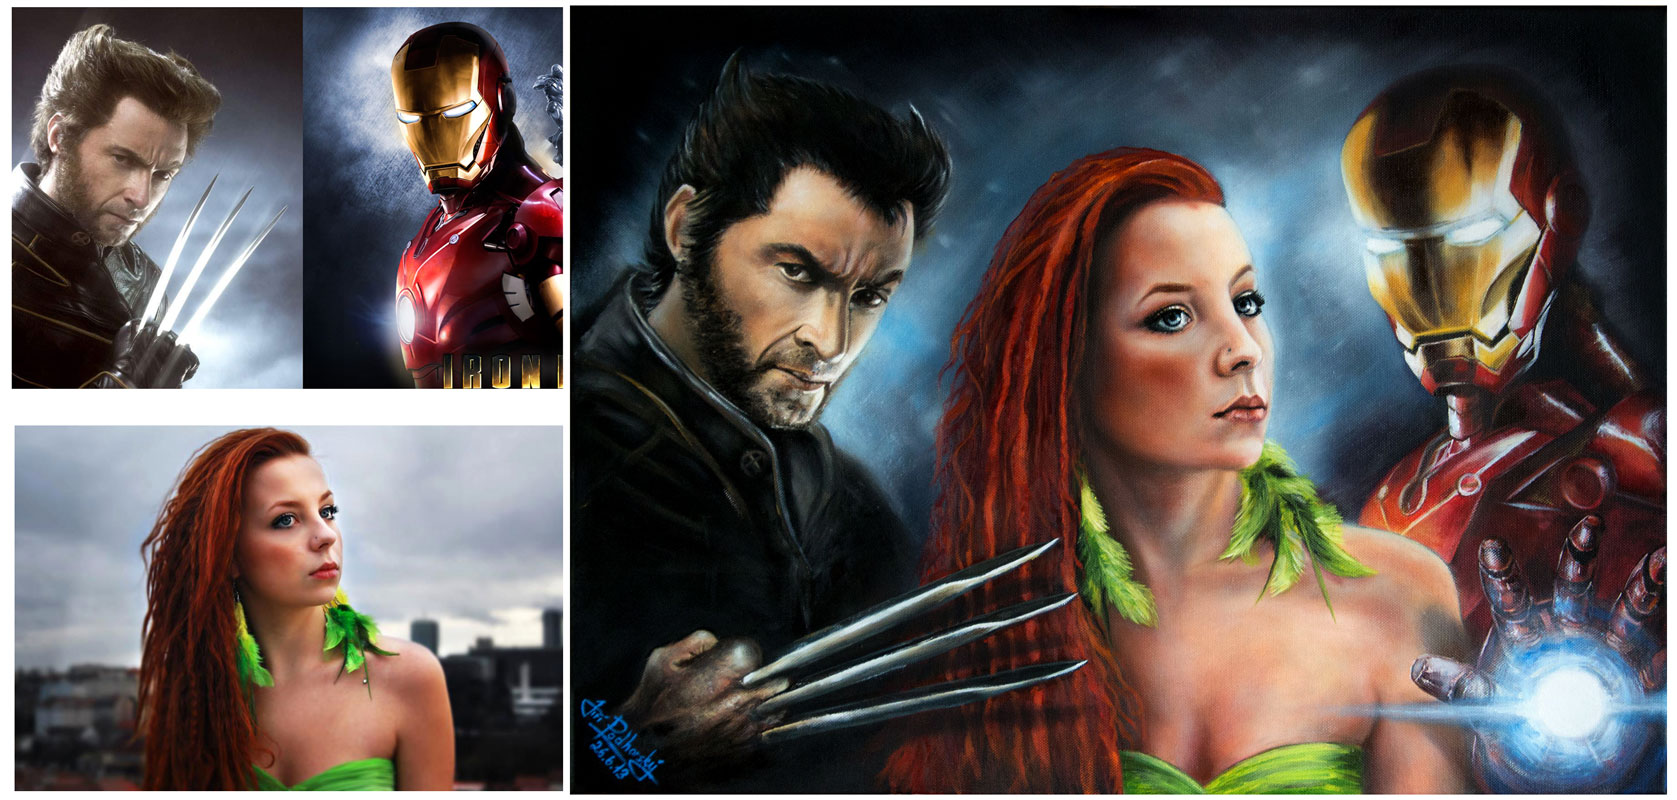 Nicka-Wolverine-Iron man